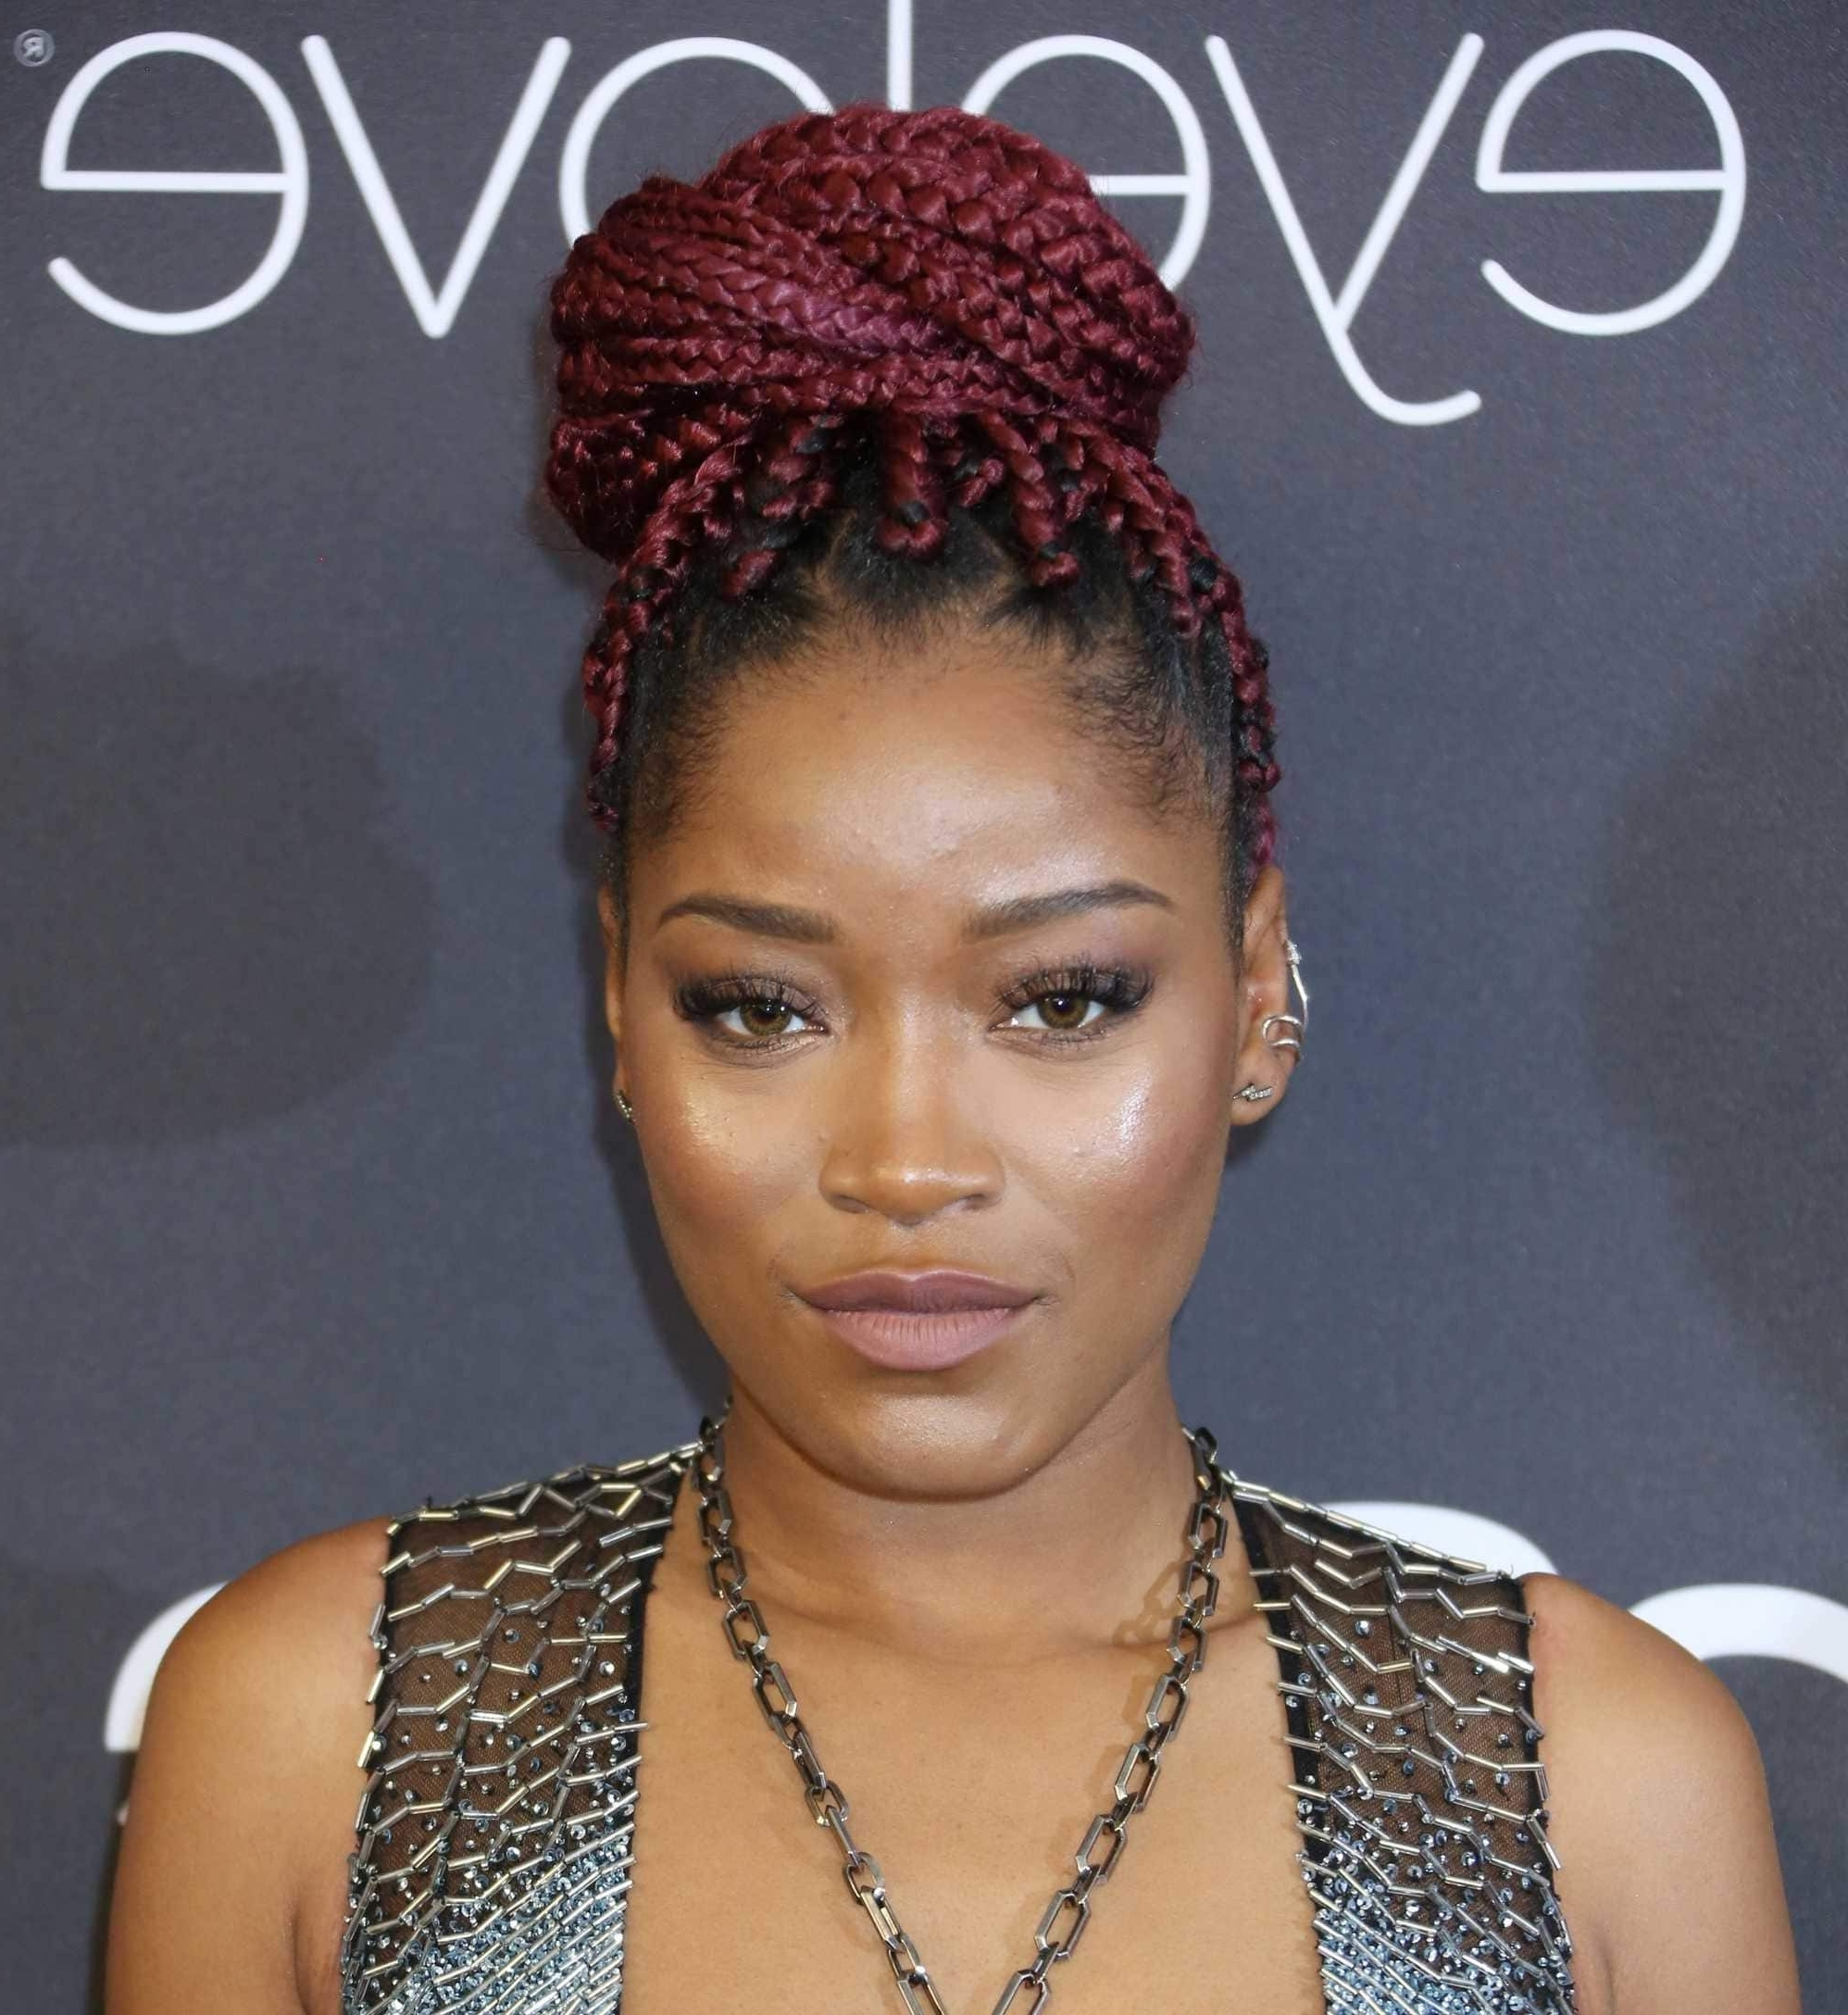 Box Braids: 13 Pretty Hairstyles To Inspire Your Next Look With Regard To Box Braids Updo Hairstyles (View 7 of 15)